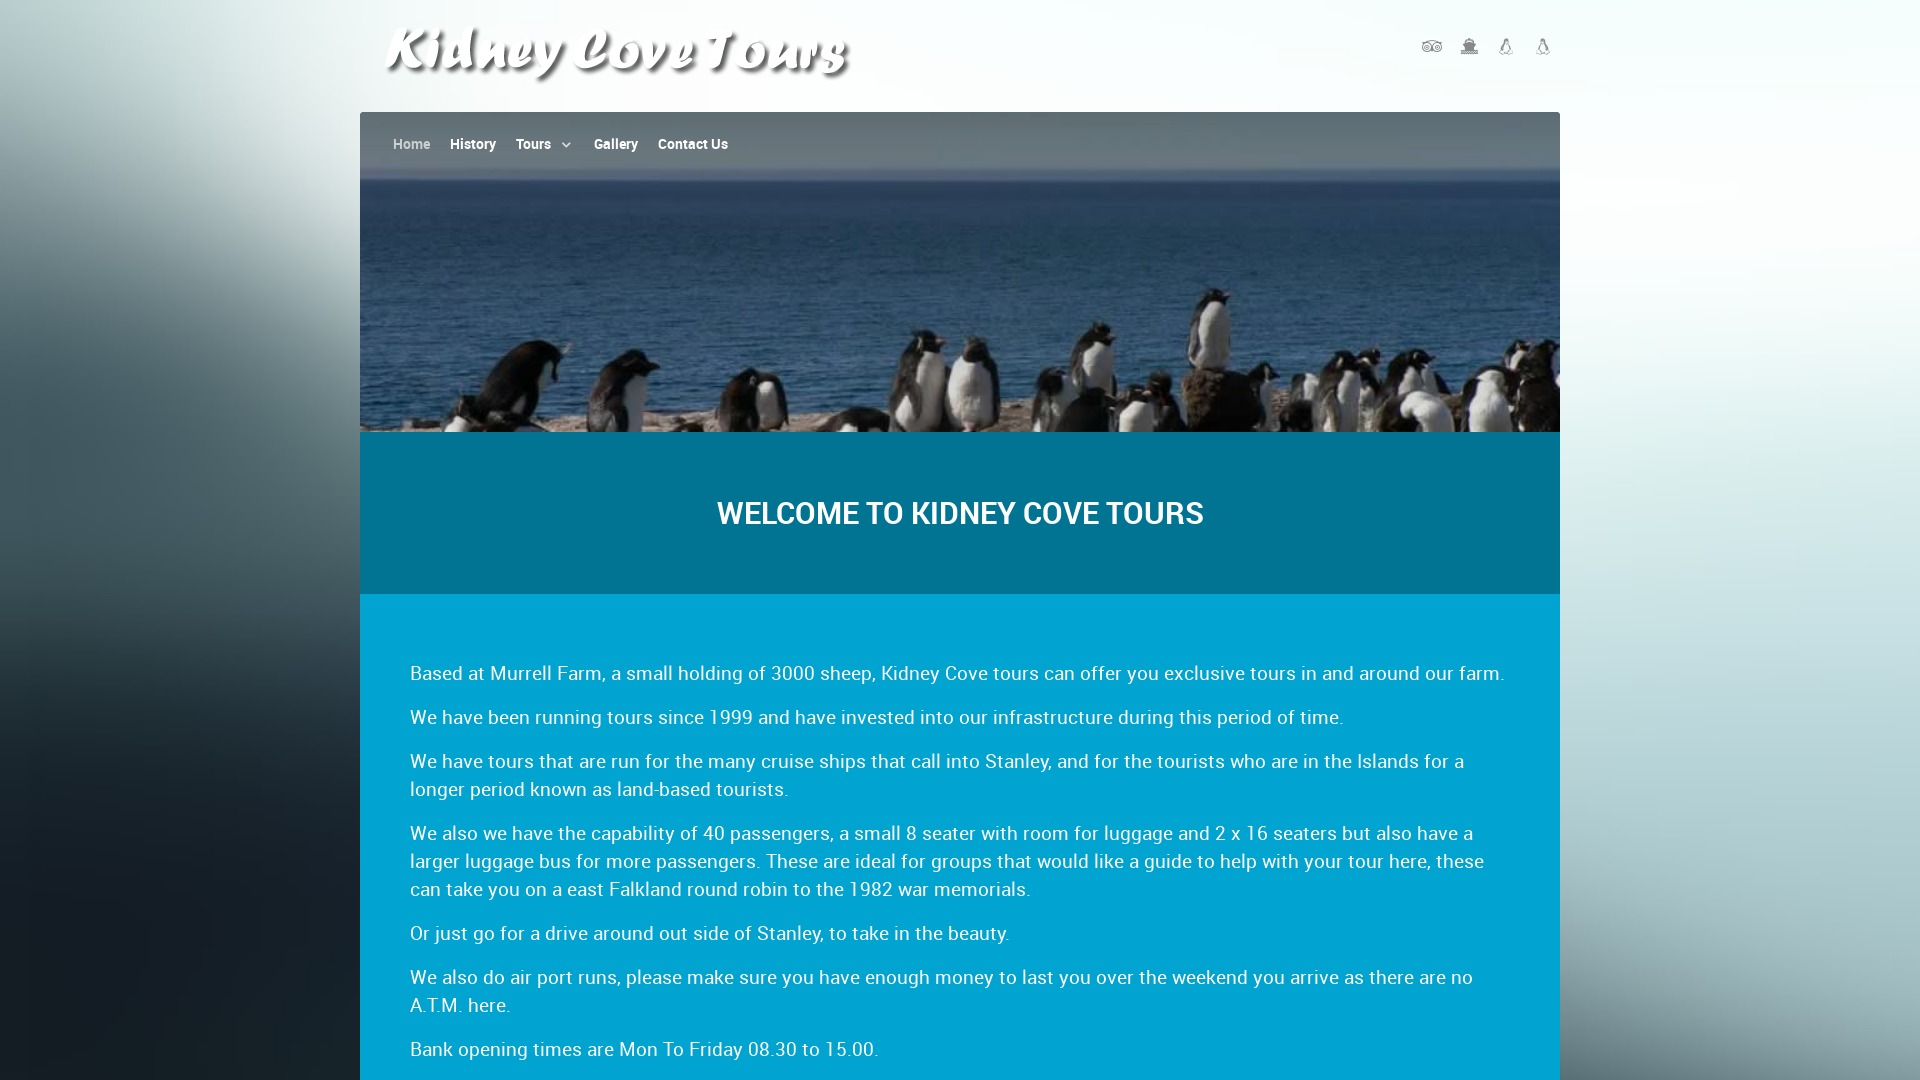 Kidney Cove Tours